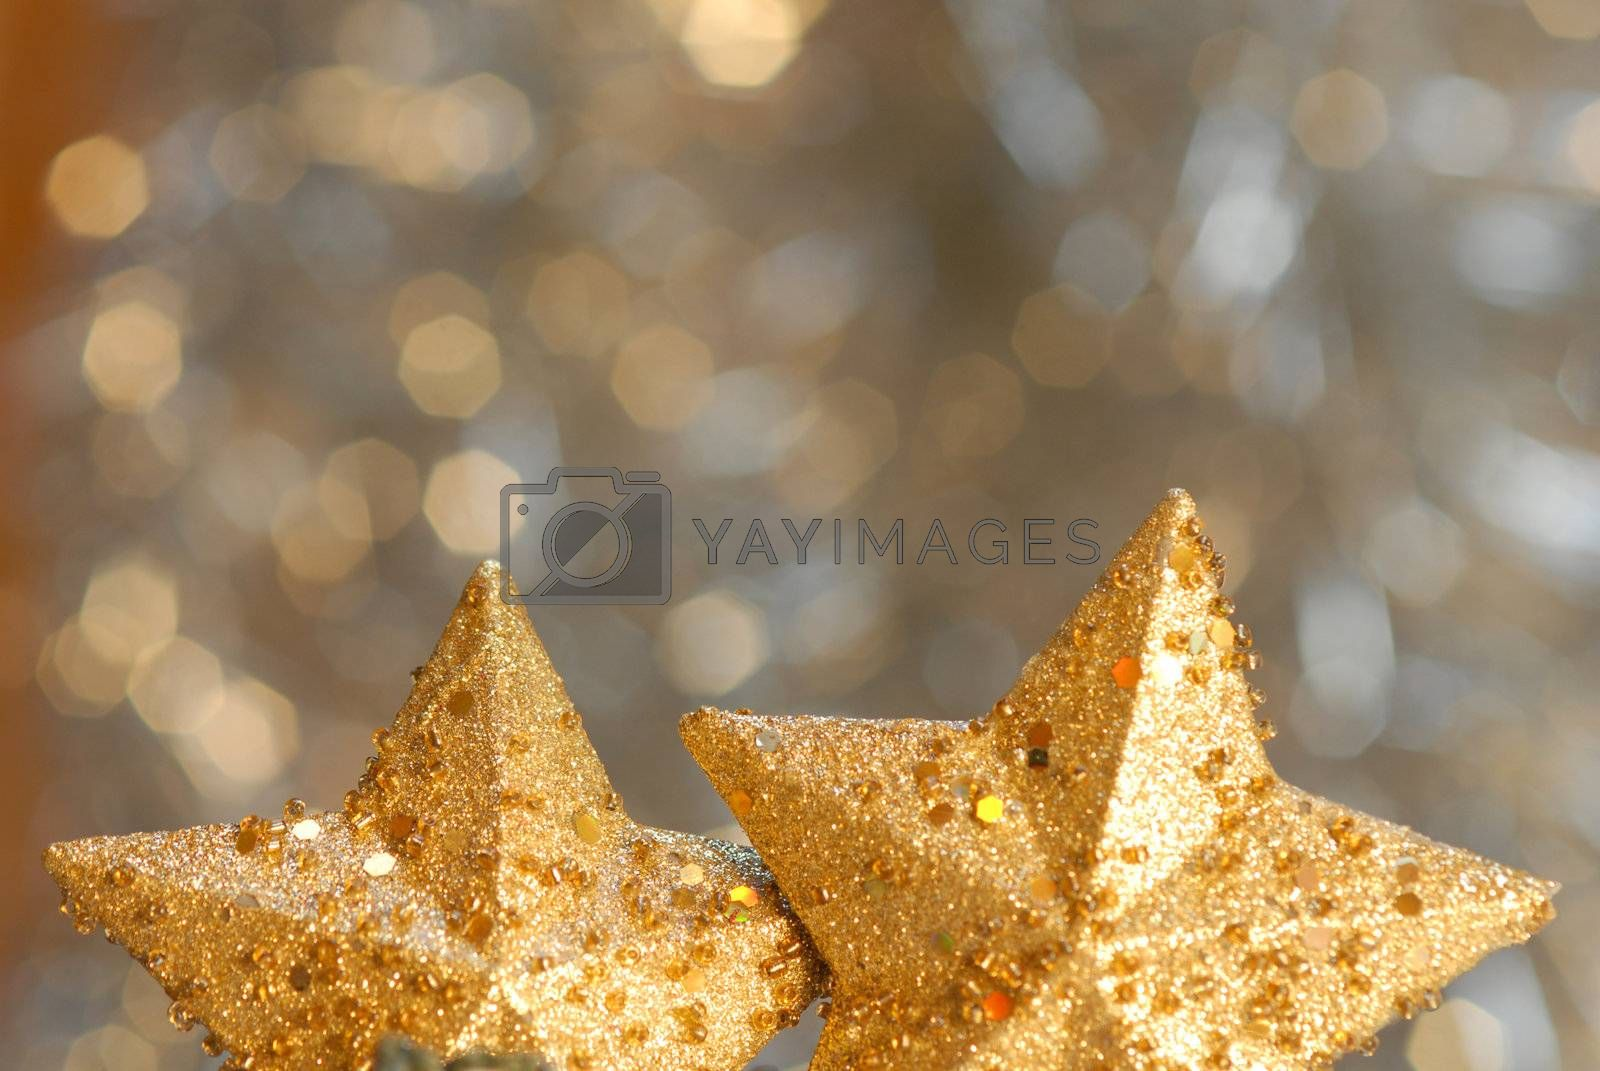 Christmas decoration two stars on a blurred background with copyspace